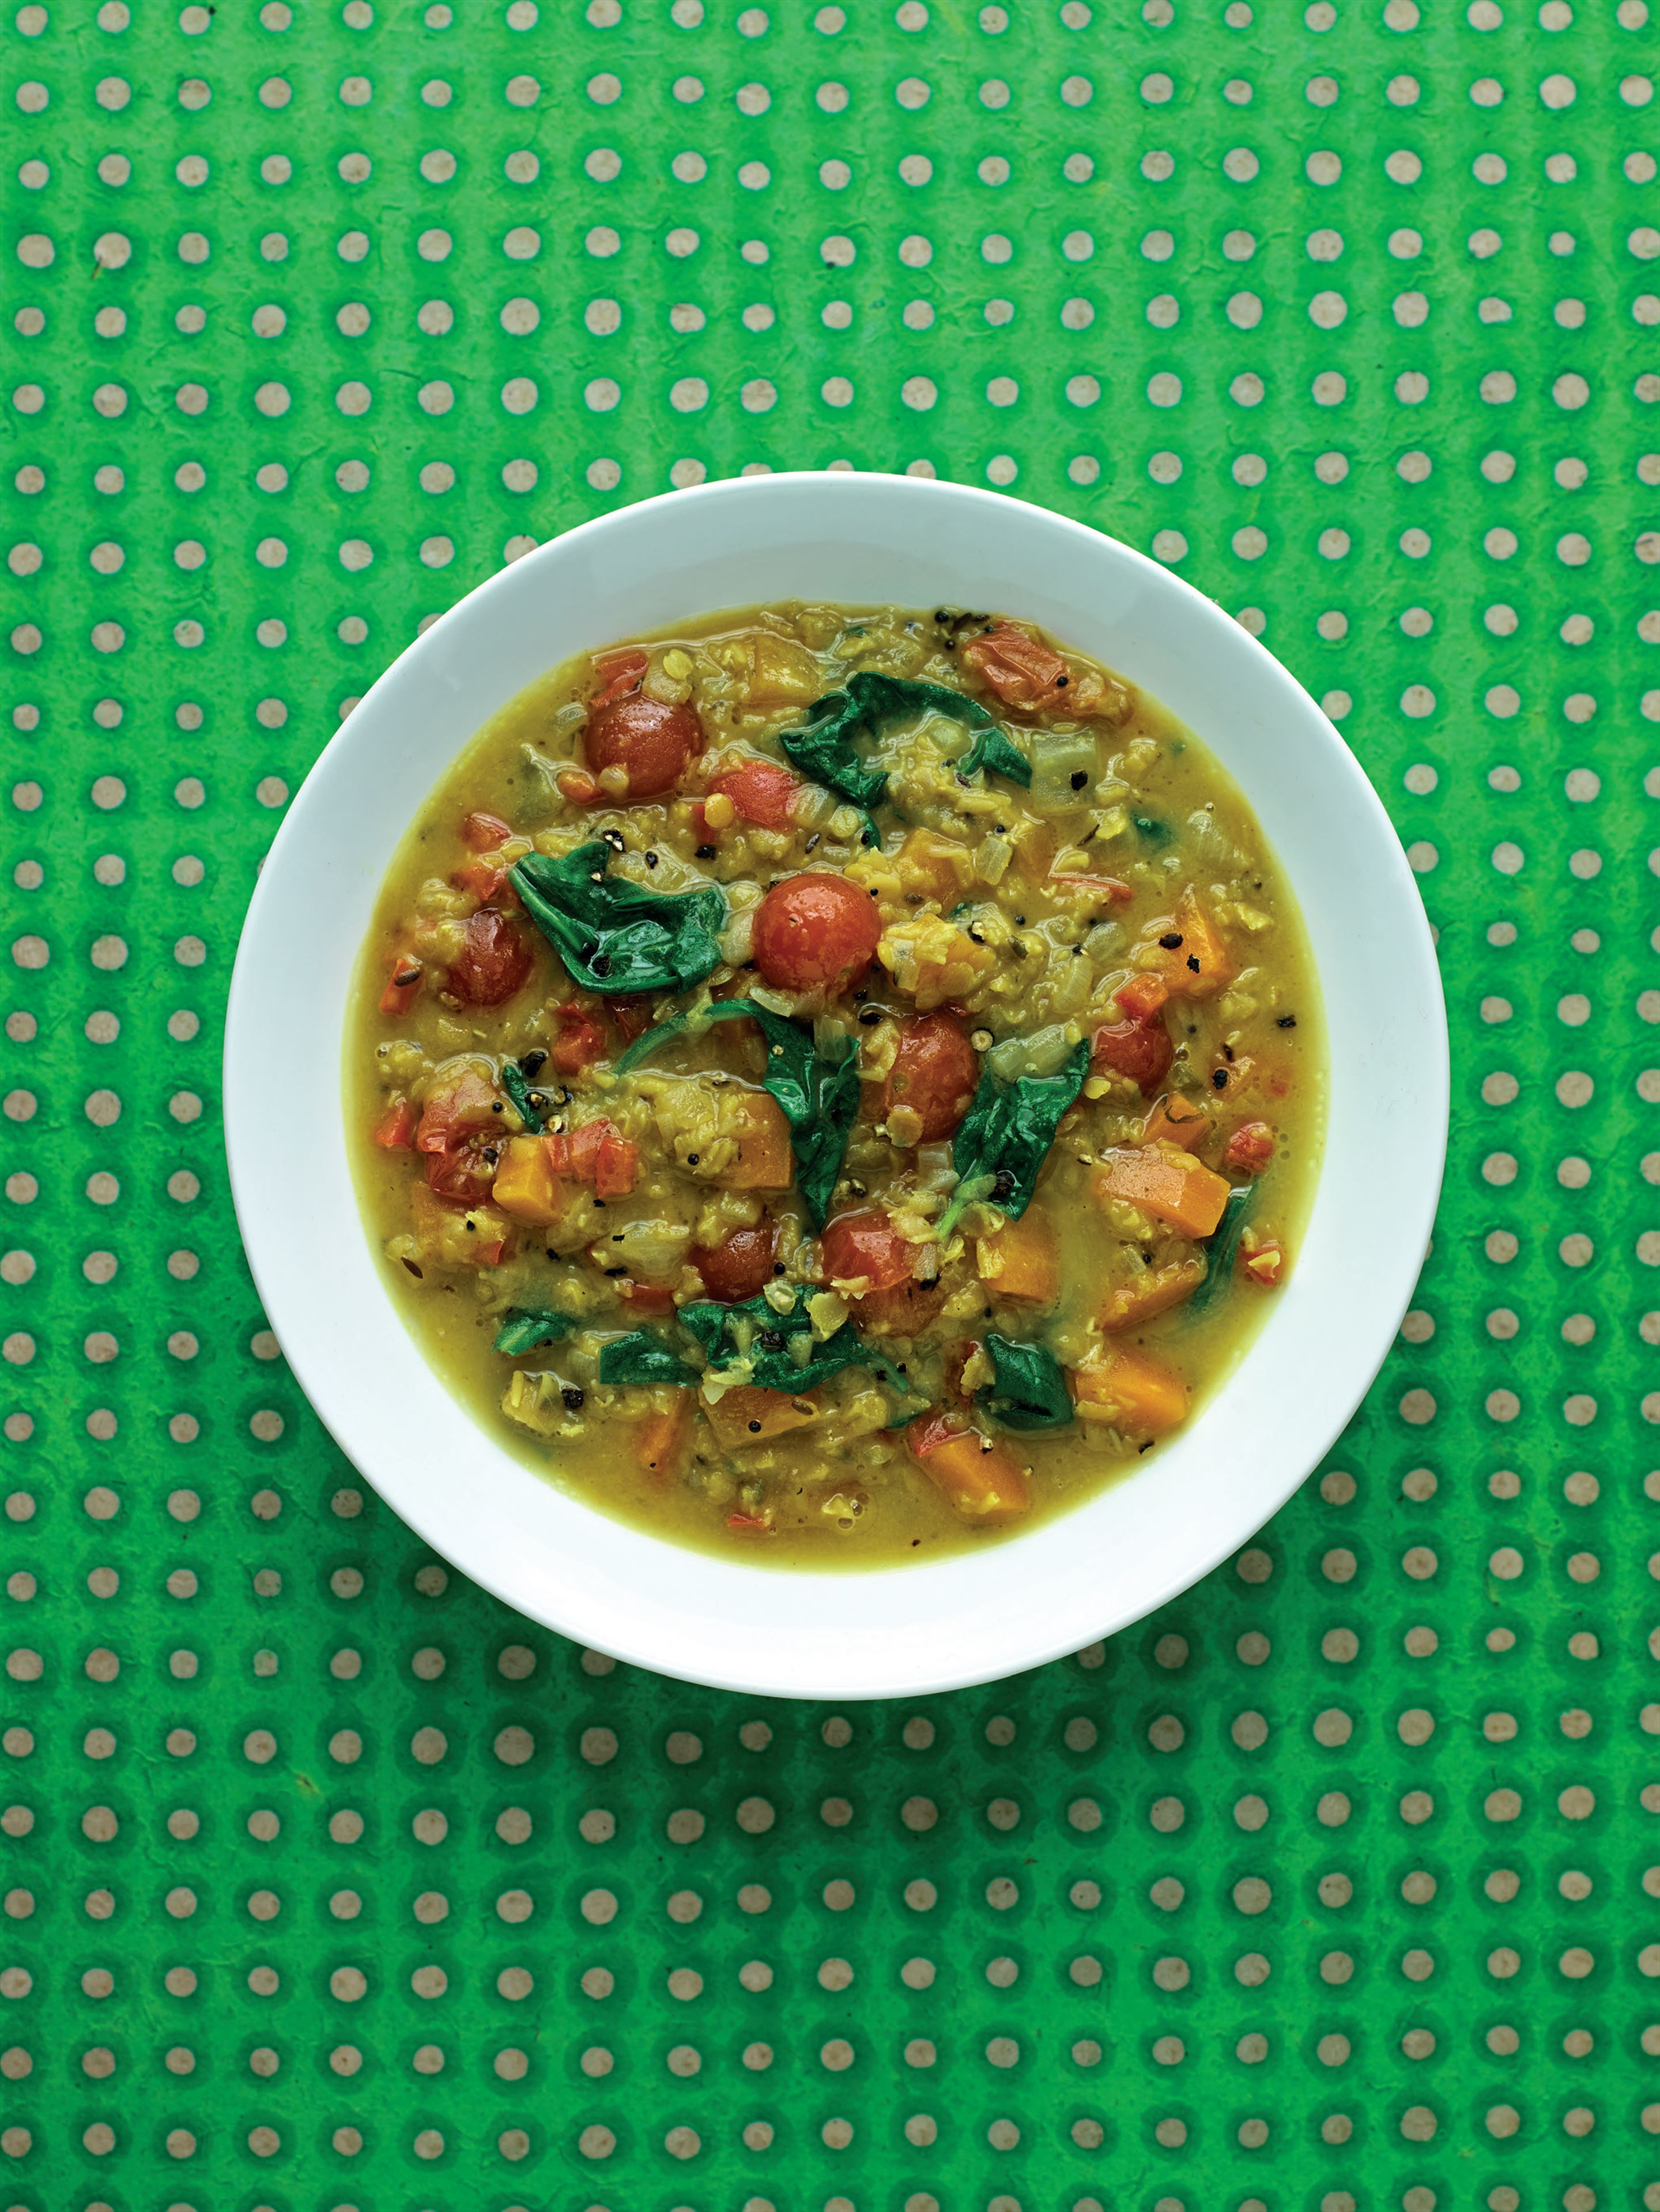 Curried red lentil, spinach and coconut broth